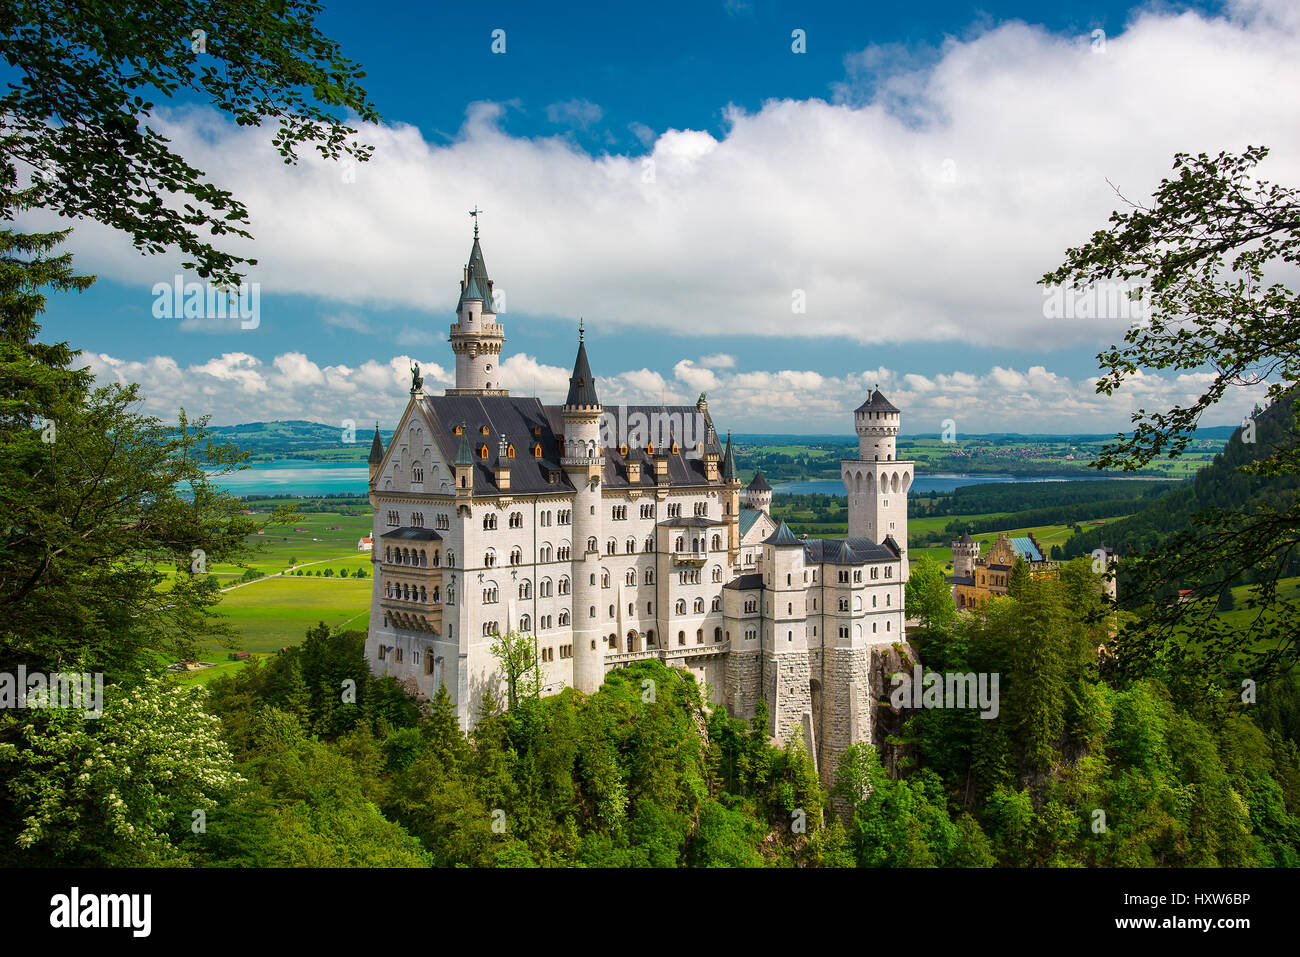 Beautiful view of world-famous Neuschwanstein Castle, the 19th century Romanesque Revival palace built for King - Stock Image